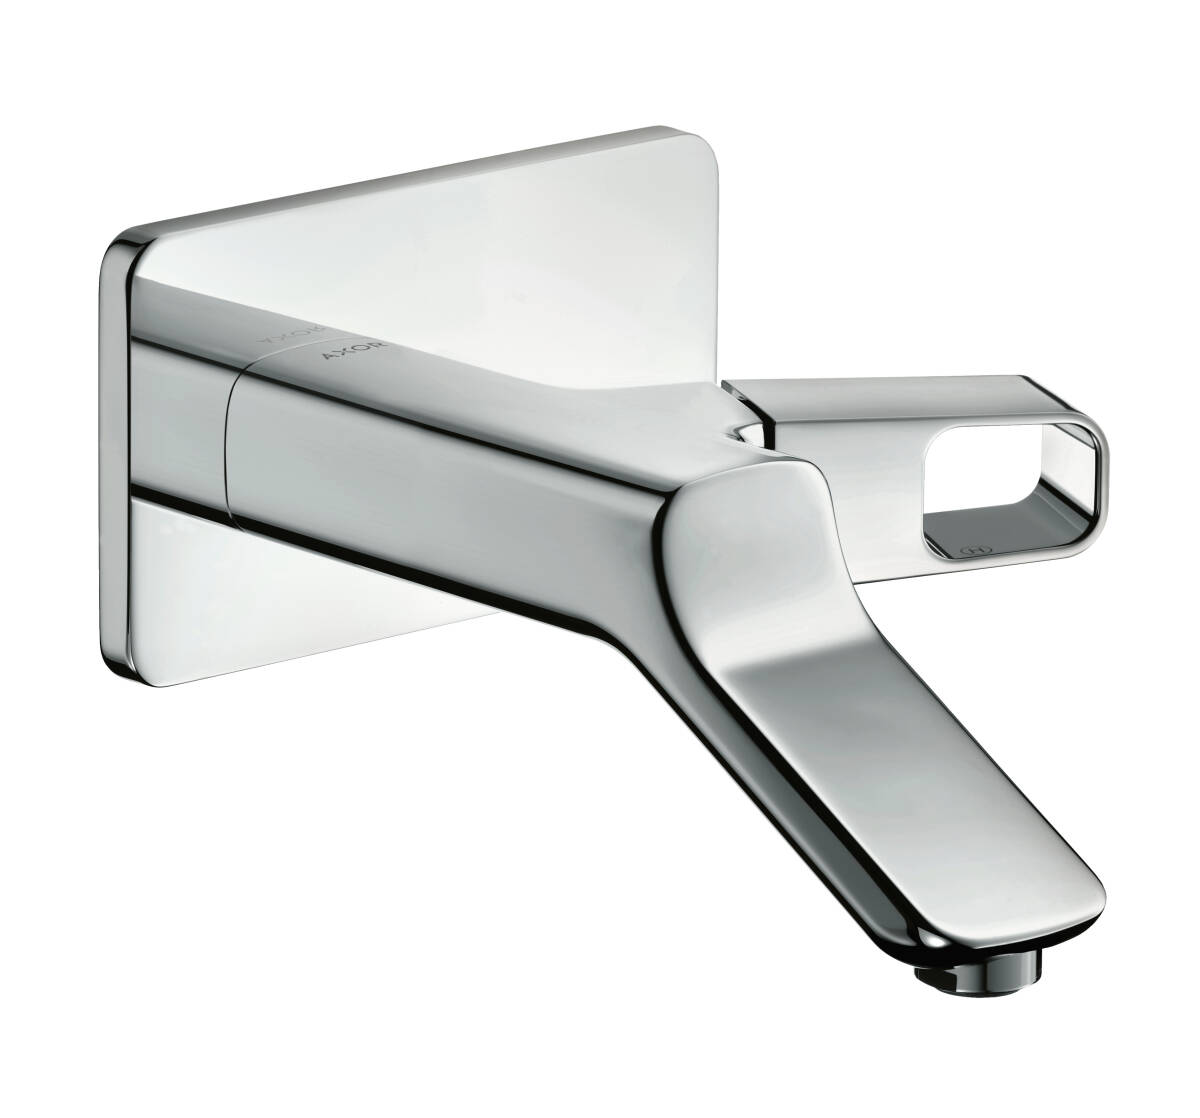 Single lever basin mixer for concealed installation wall-mounted with spout 200 mm, Polished Gold Optic, 11026990